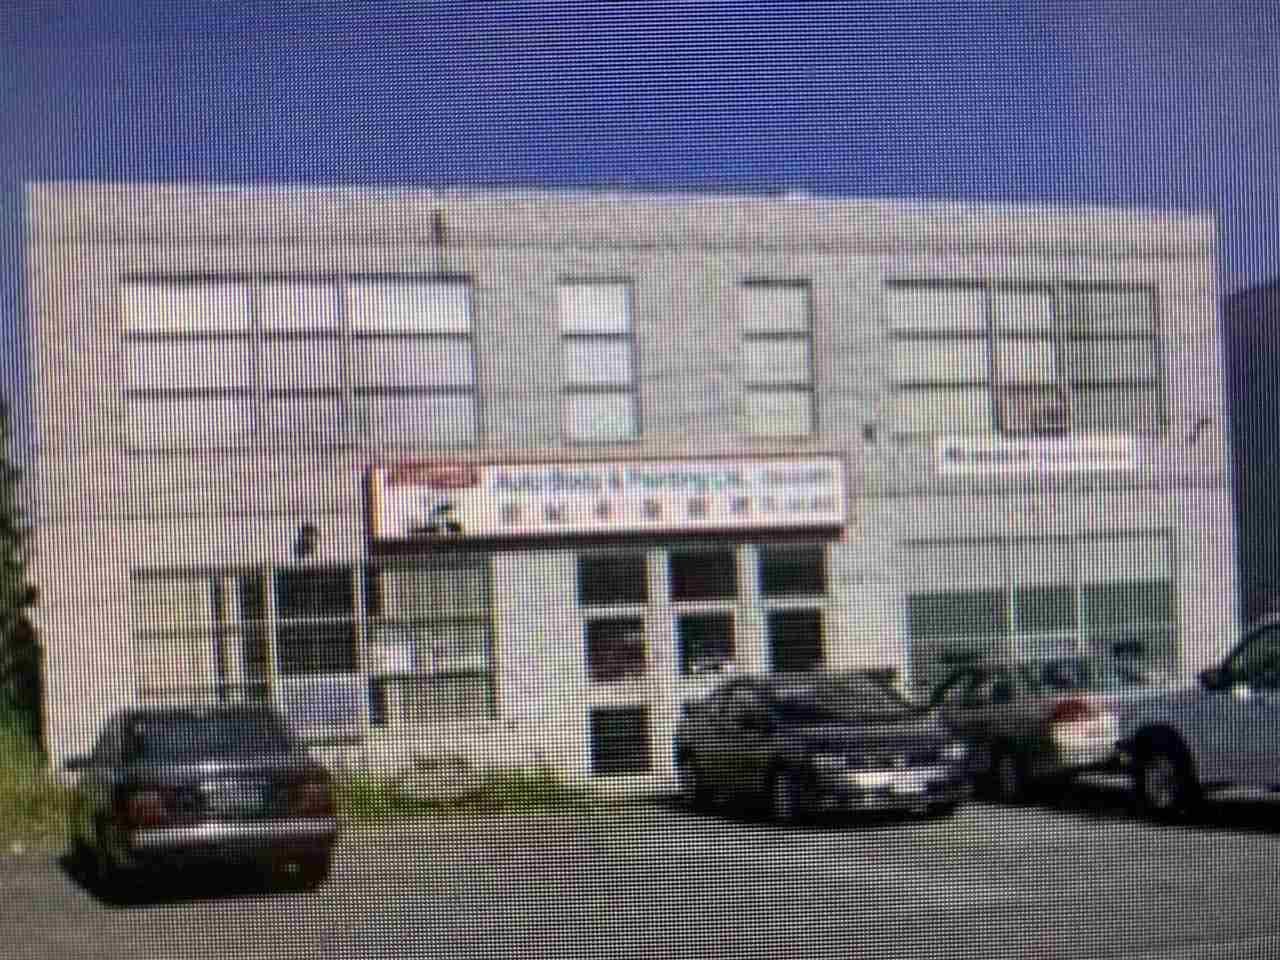 Main Photo: 3 6890 MACPHERSON Avenue in Burnaby: Metrotown Industrial for lease (Burnaby South)  : MLS®# C8035995